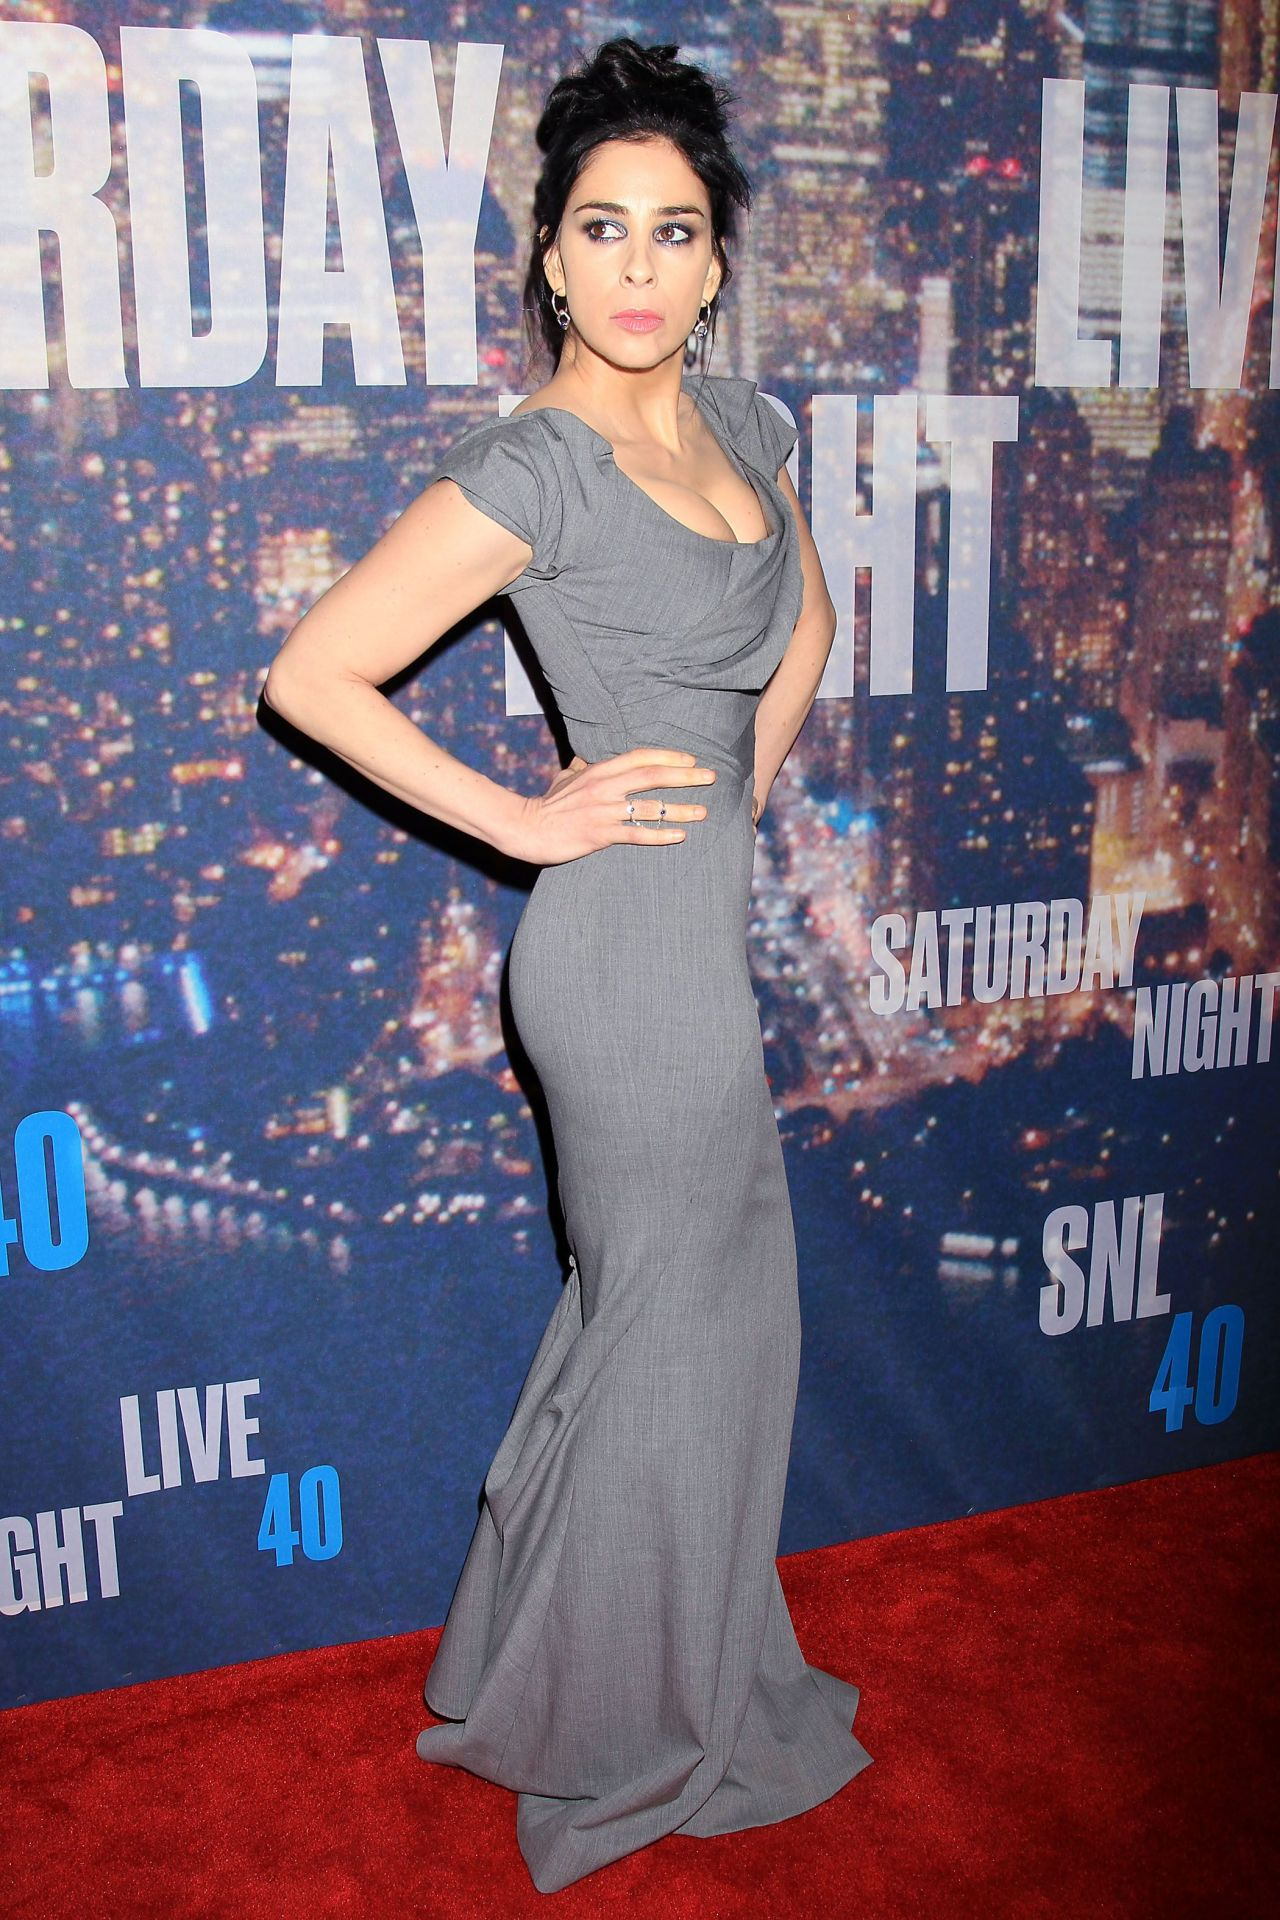 Sexiest celebs over 40?(Milfs) - Page 2 - Wrestling Forum